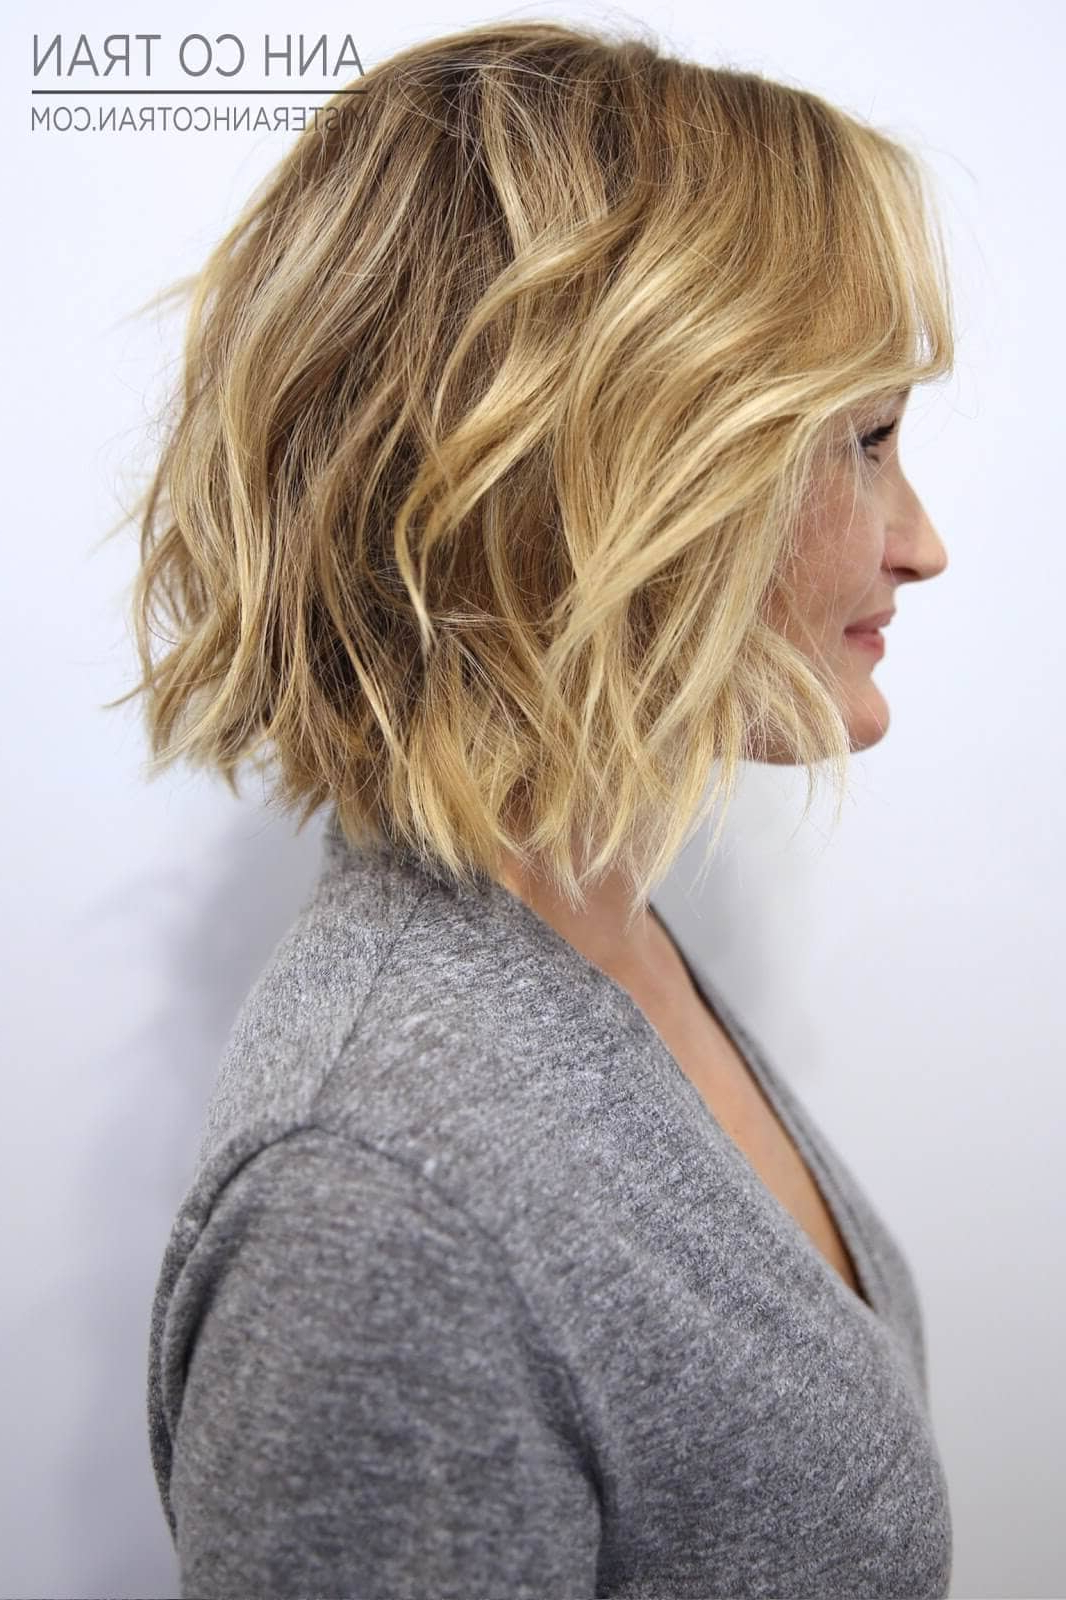 50 Ways To Wear Short Hair With Bangs For A Fresh New Look In Silver Balayage Bob Haircuts With Swoopy Layers (View 15 of 20)